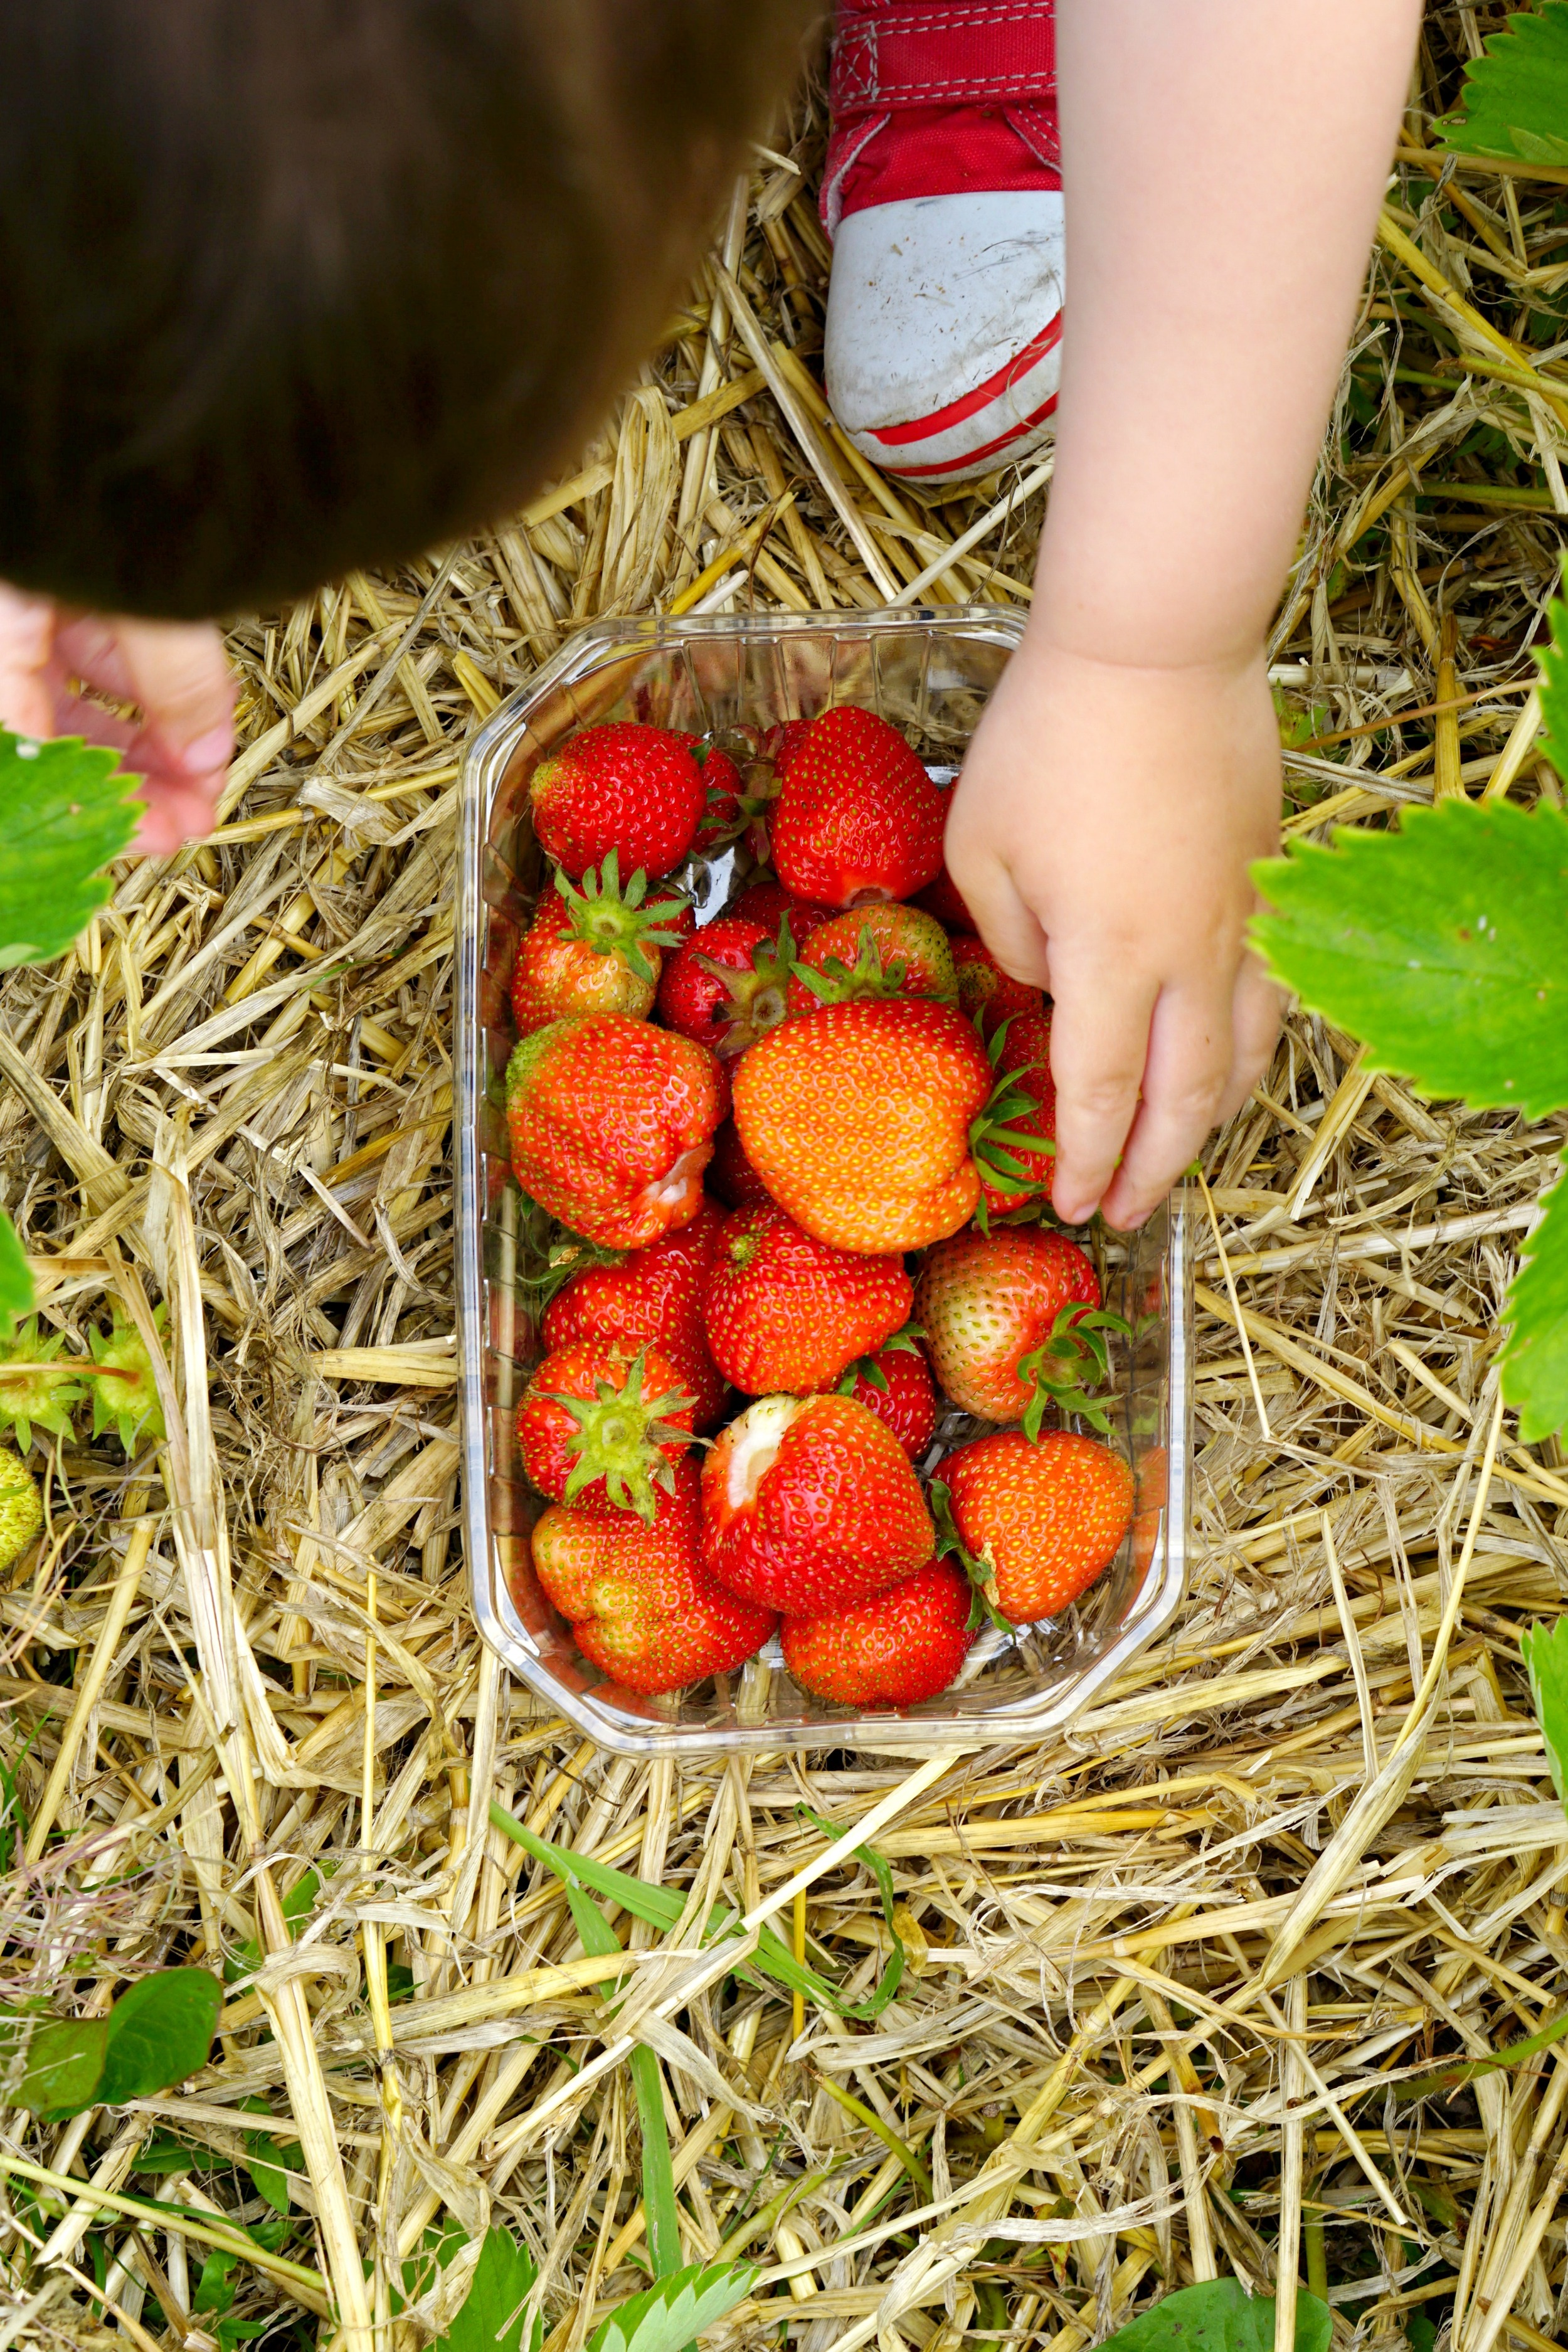 The Ordinary Lovely: Strawberry picking at Hawarden Farm Estate in North Wales